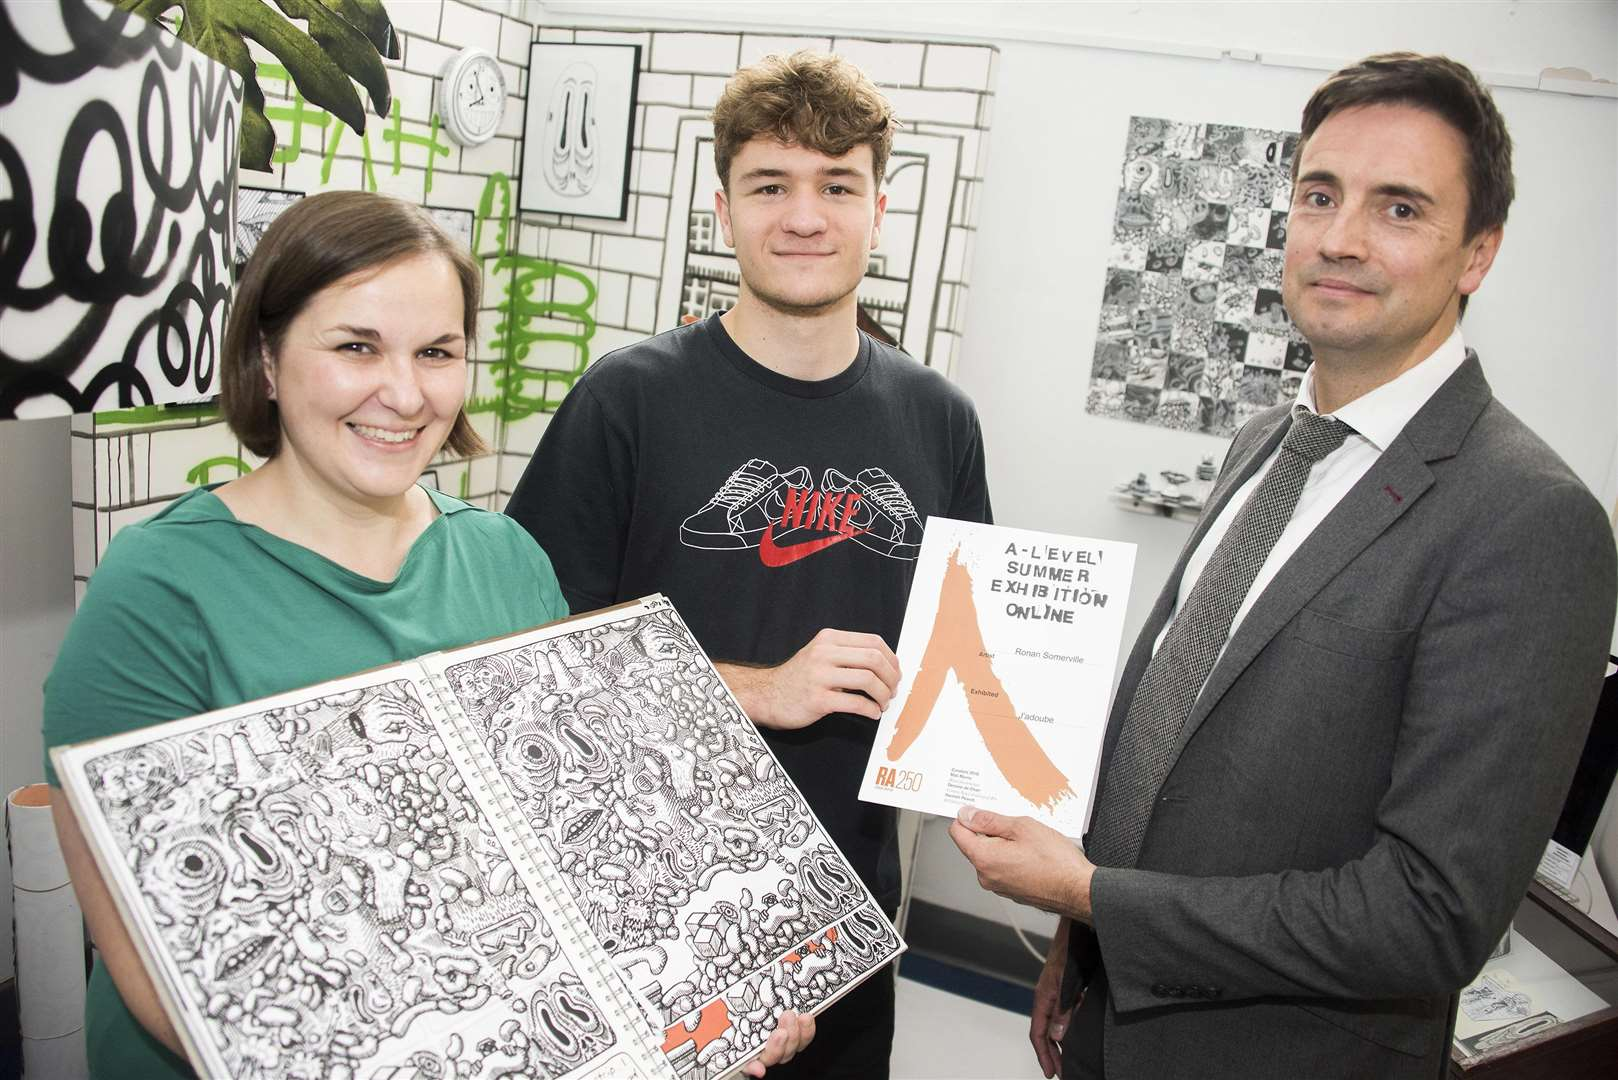 Ronan Somerville (centre), with his certificate from the Royal Academy of Arts for entry to A-level summer exhibition with Gemma Gibson, (left) Head of Art Textiles and Photography at Thurston Sixth and Paul Potter (right) Vice Principal of Thurston Sixth. PICTURE: Mark Westley.